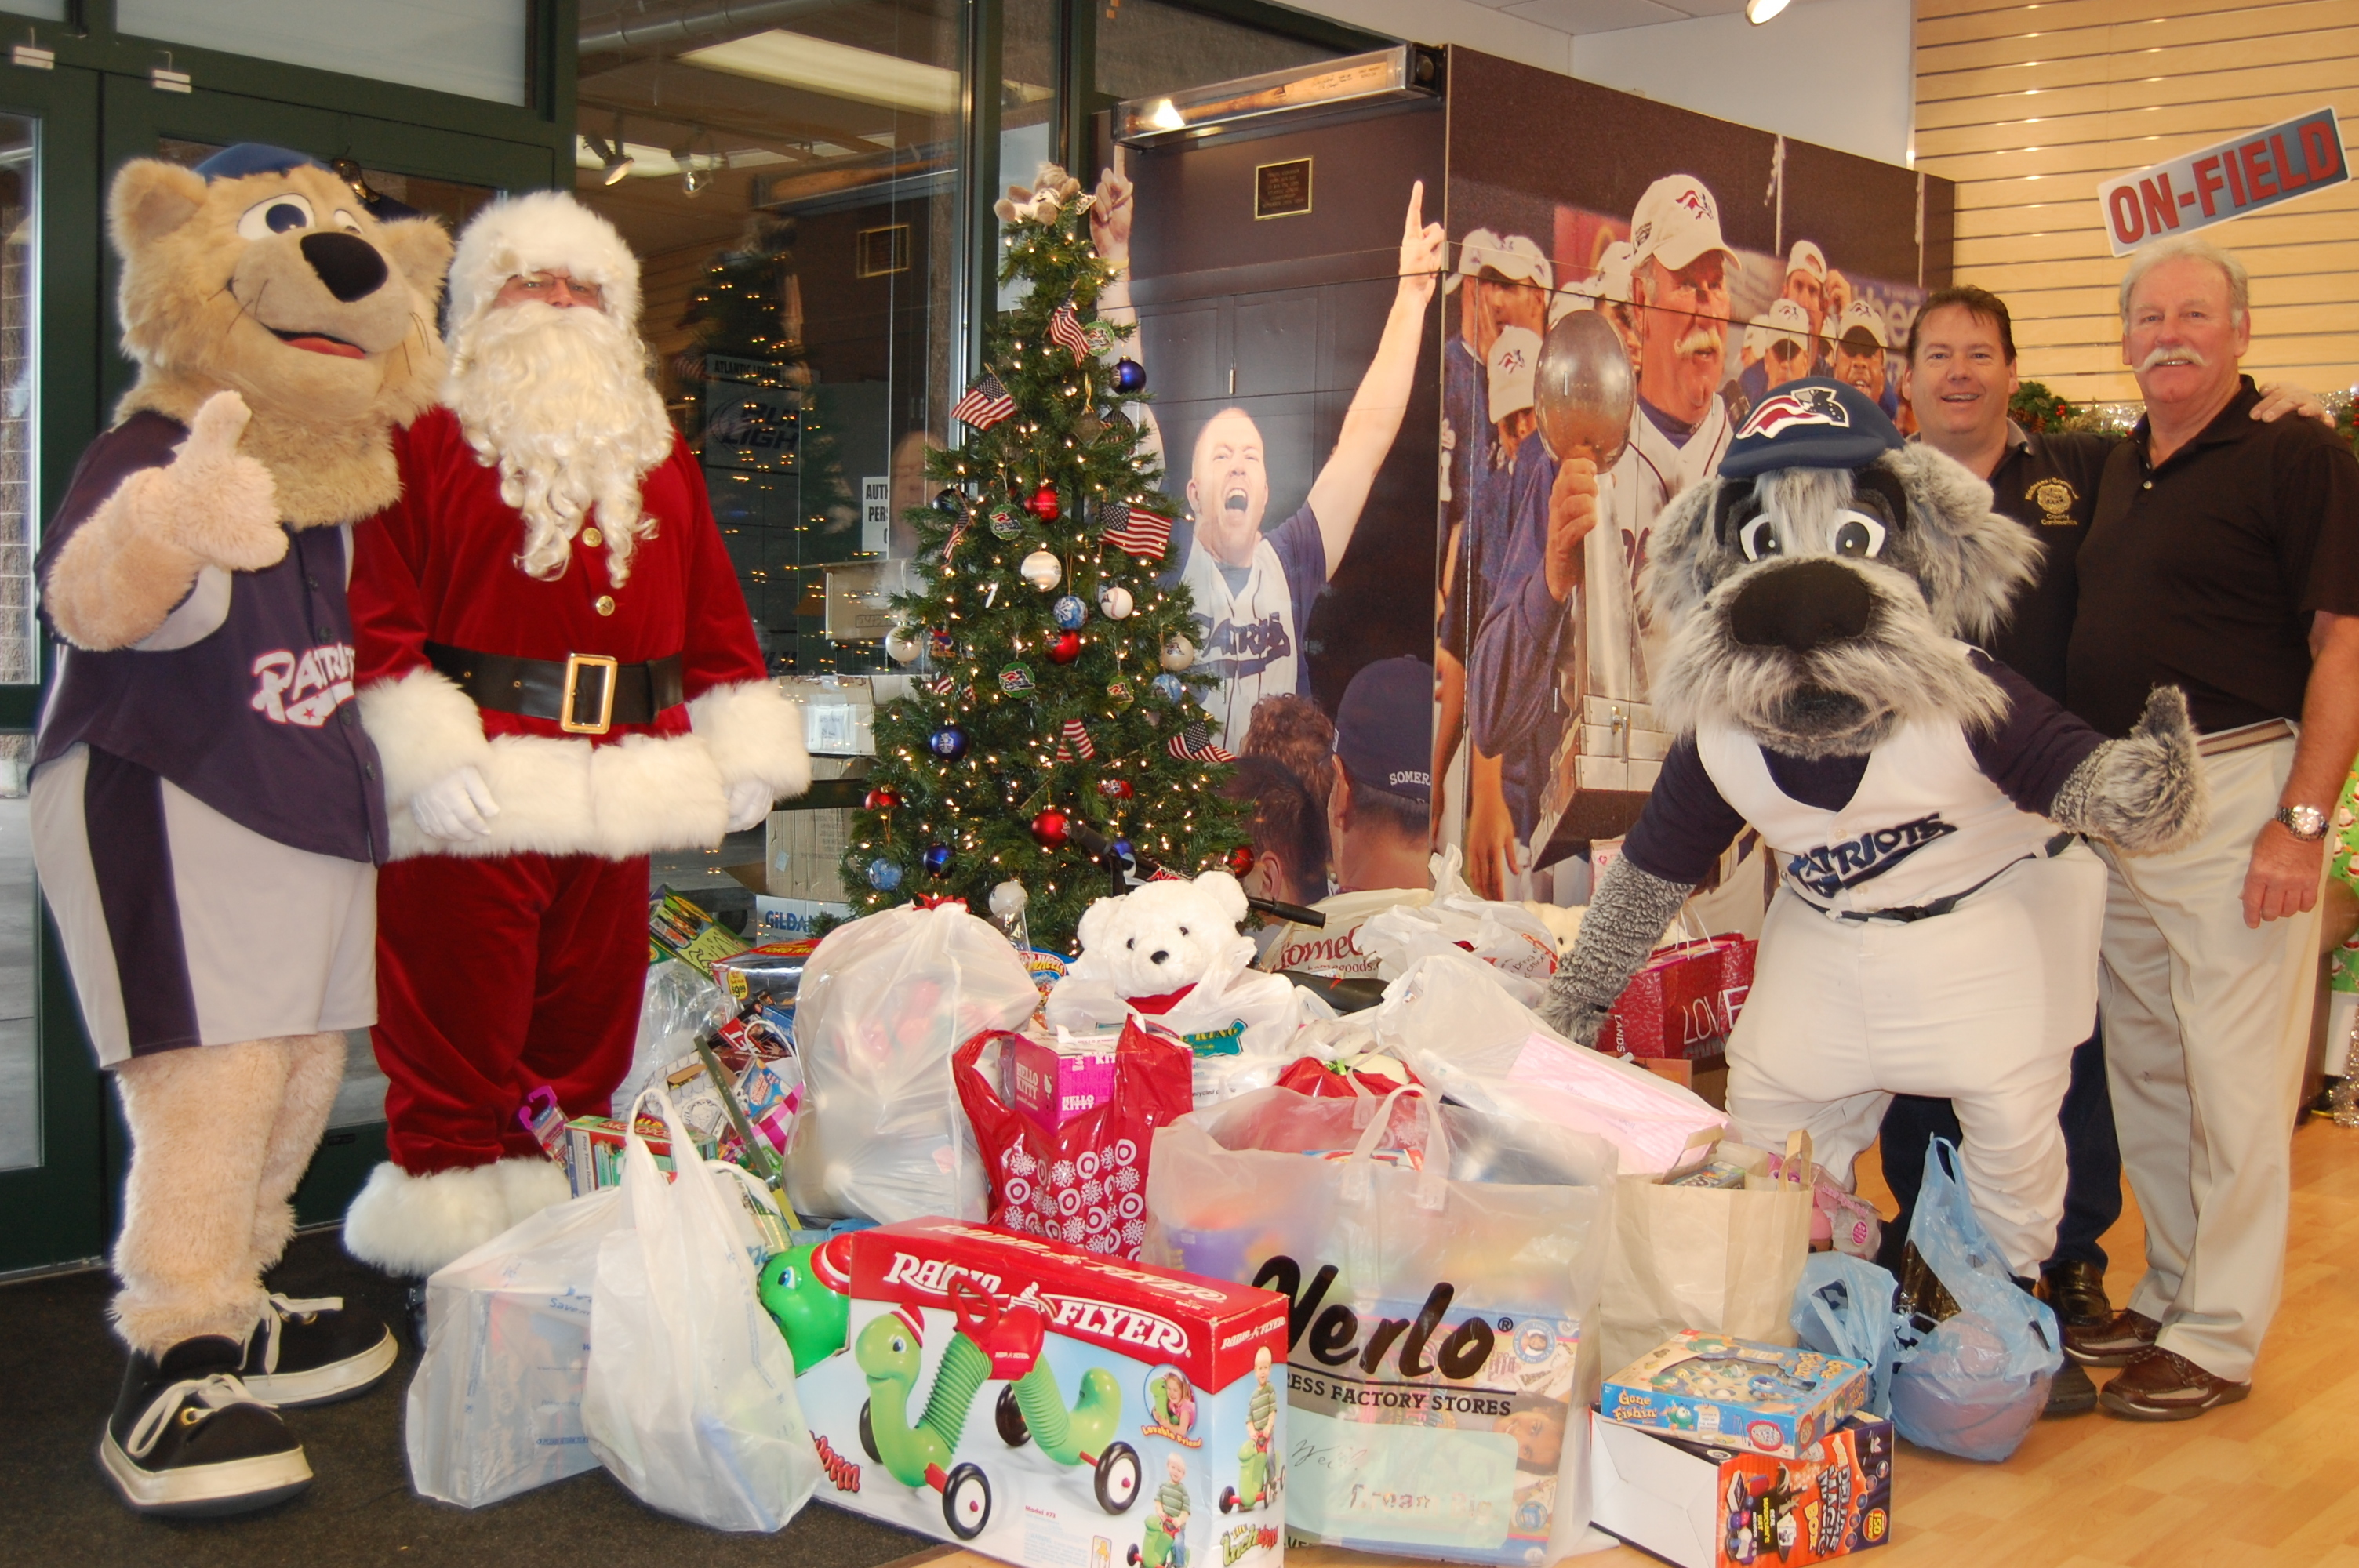 Td Bank Christmas Eve Hours.Sparky Lyle Somerset Patriots Host Holiday Toy Drive On Dec